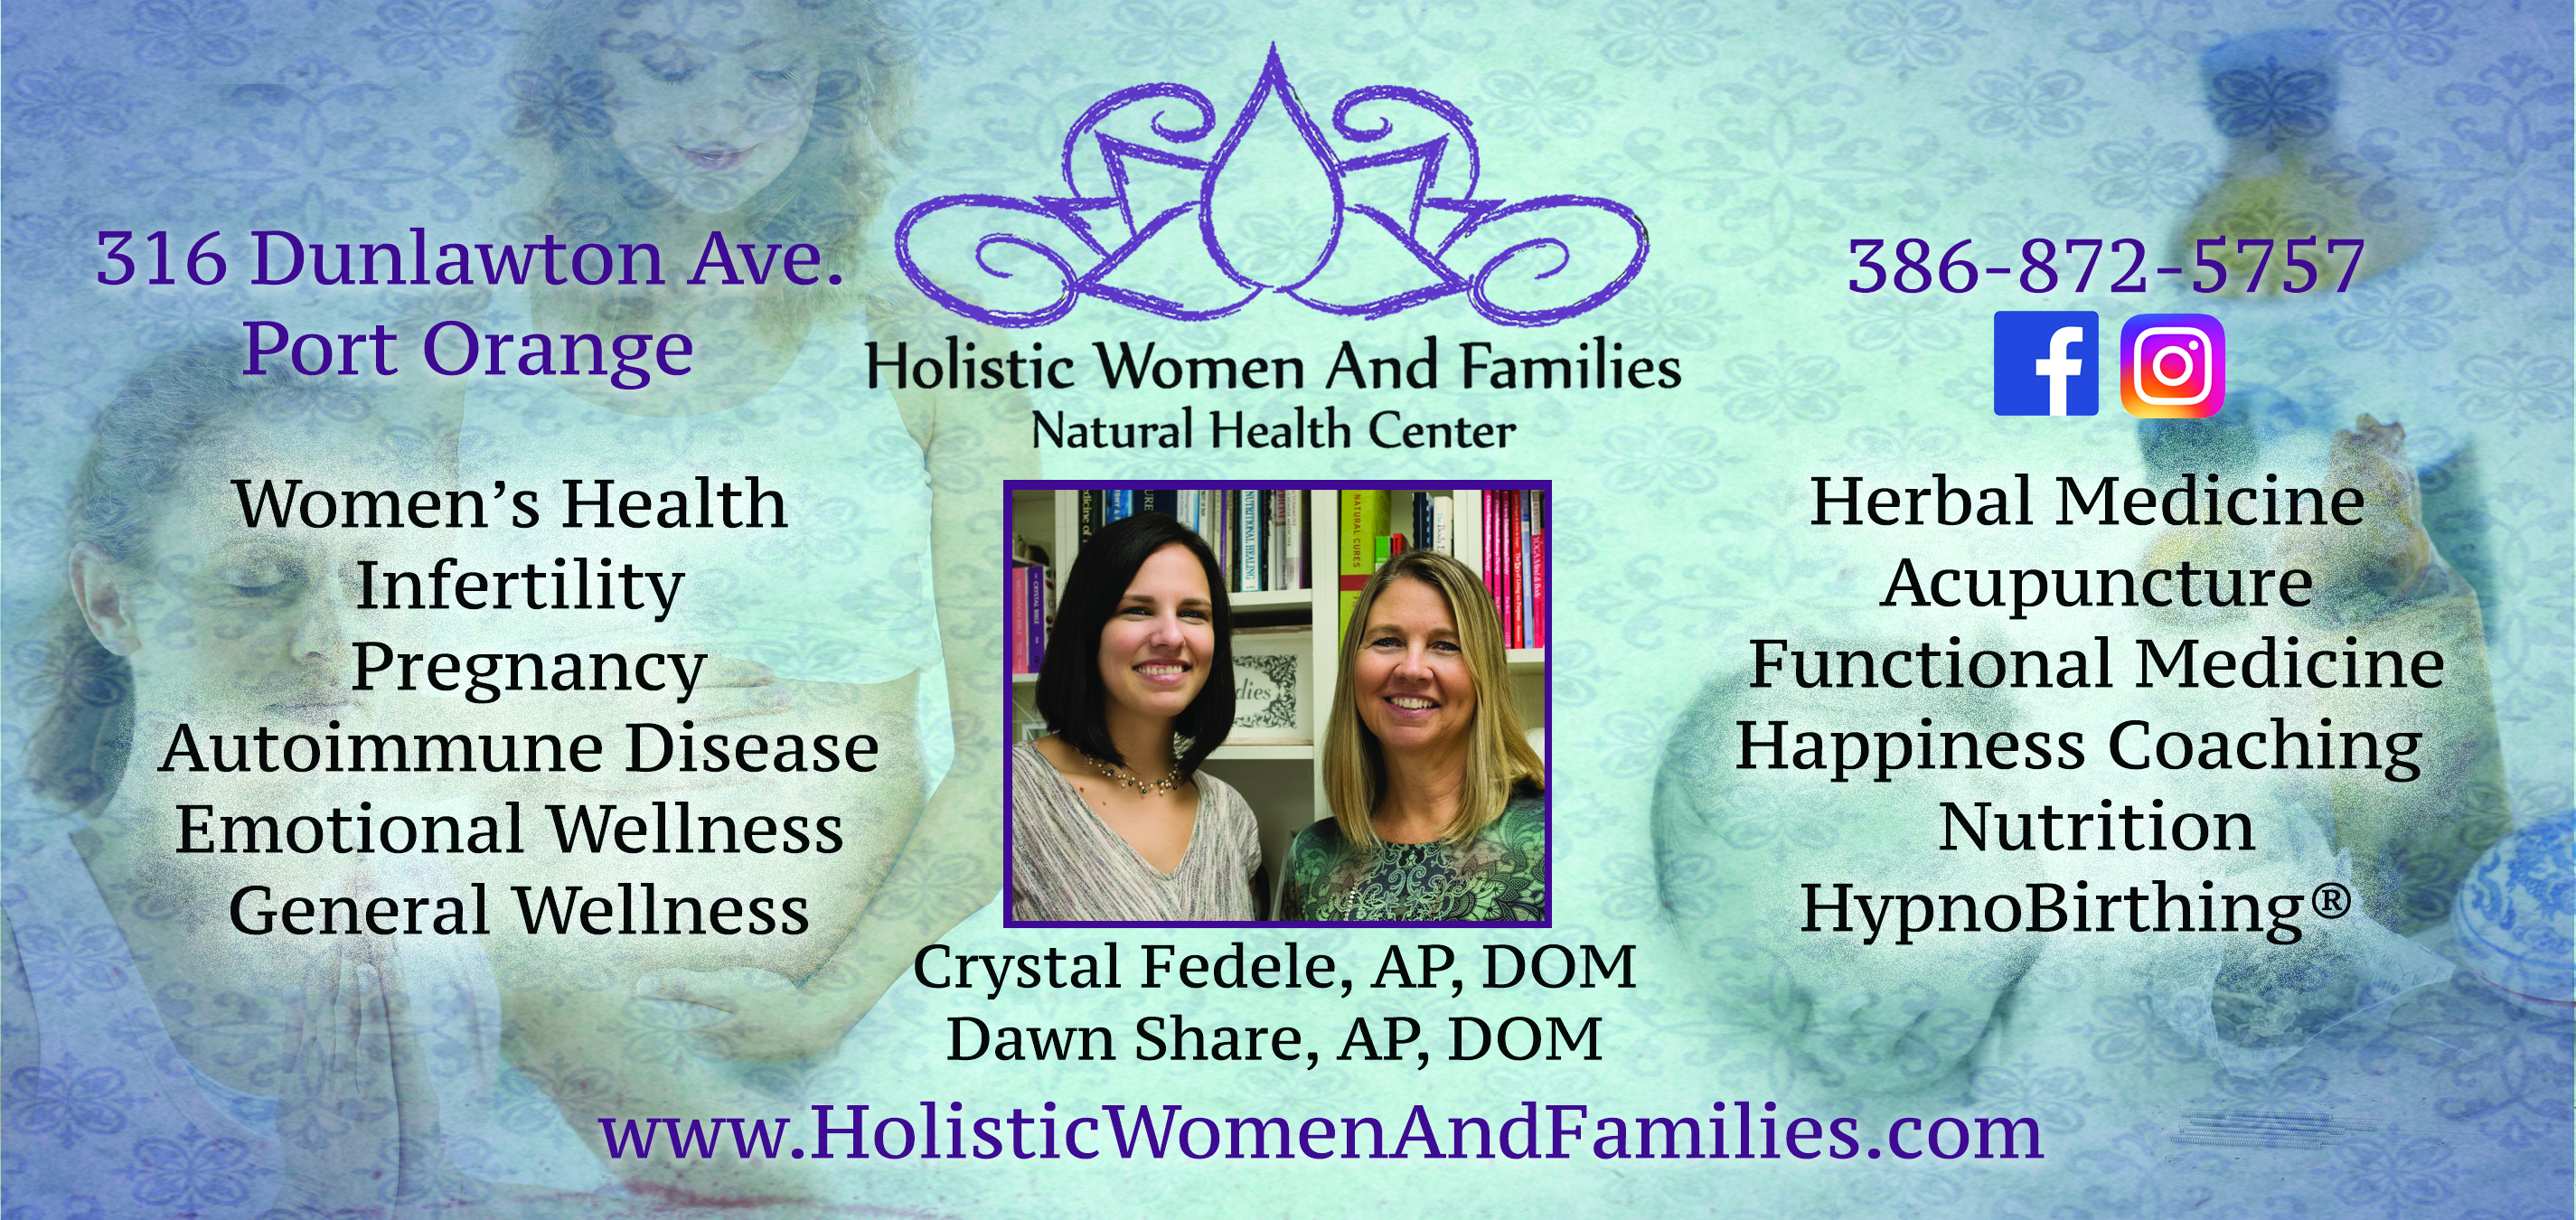 Holistic Women and Families Natural Health Center has an